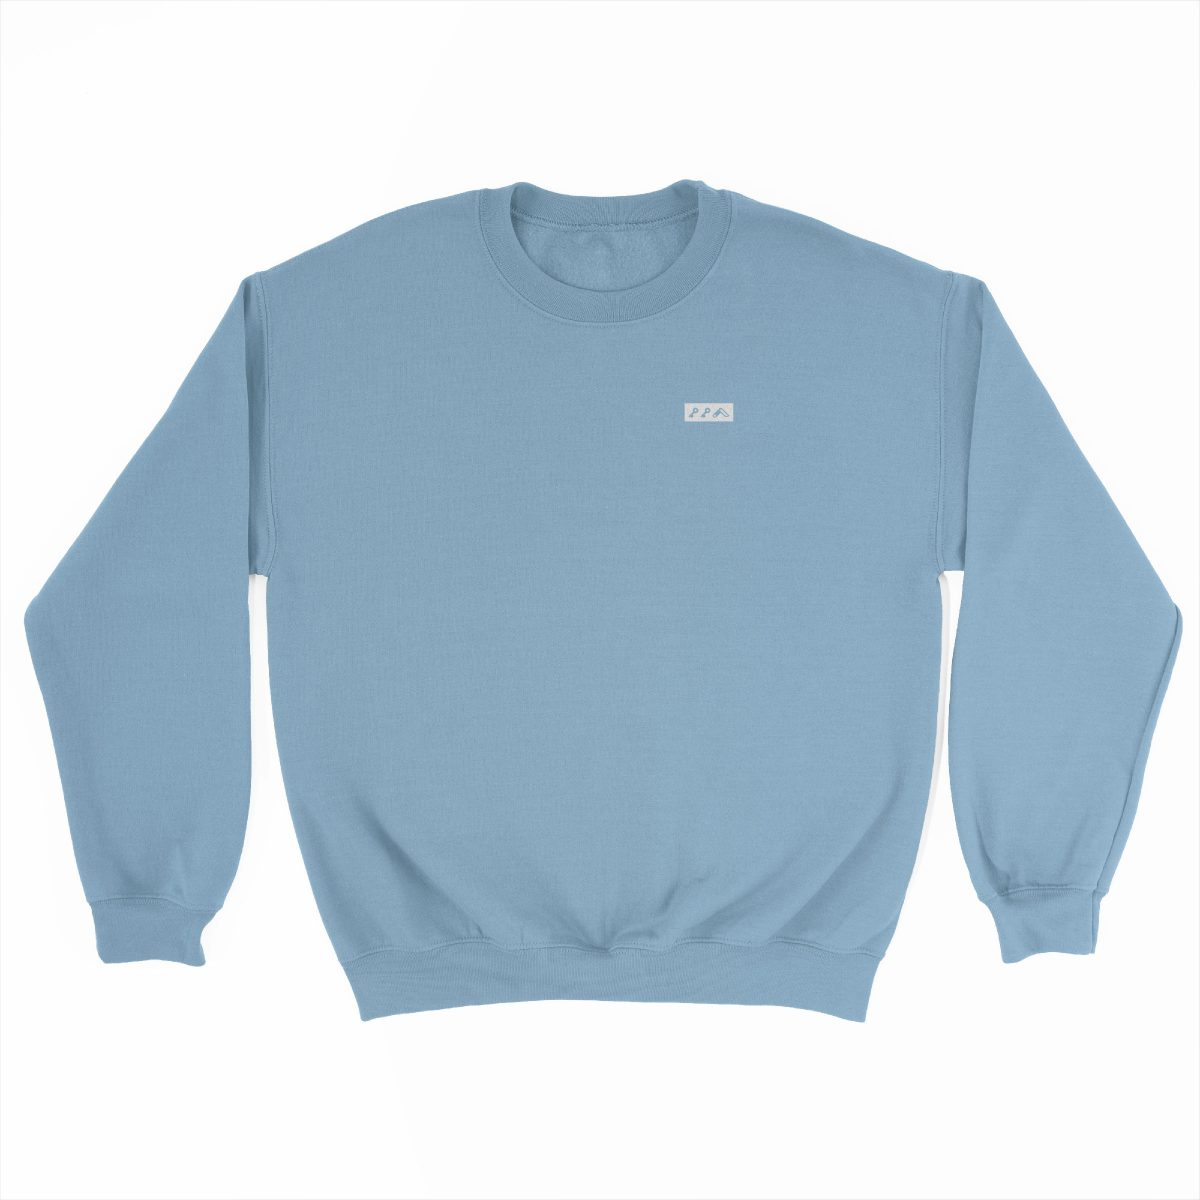 KIKICUTT white icon on a light blue comfy sweatshirt at kikicutt.com